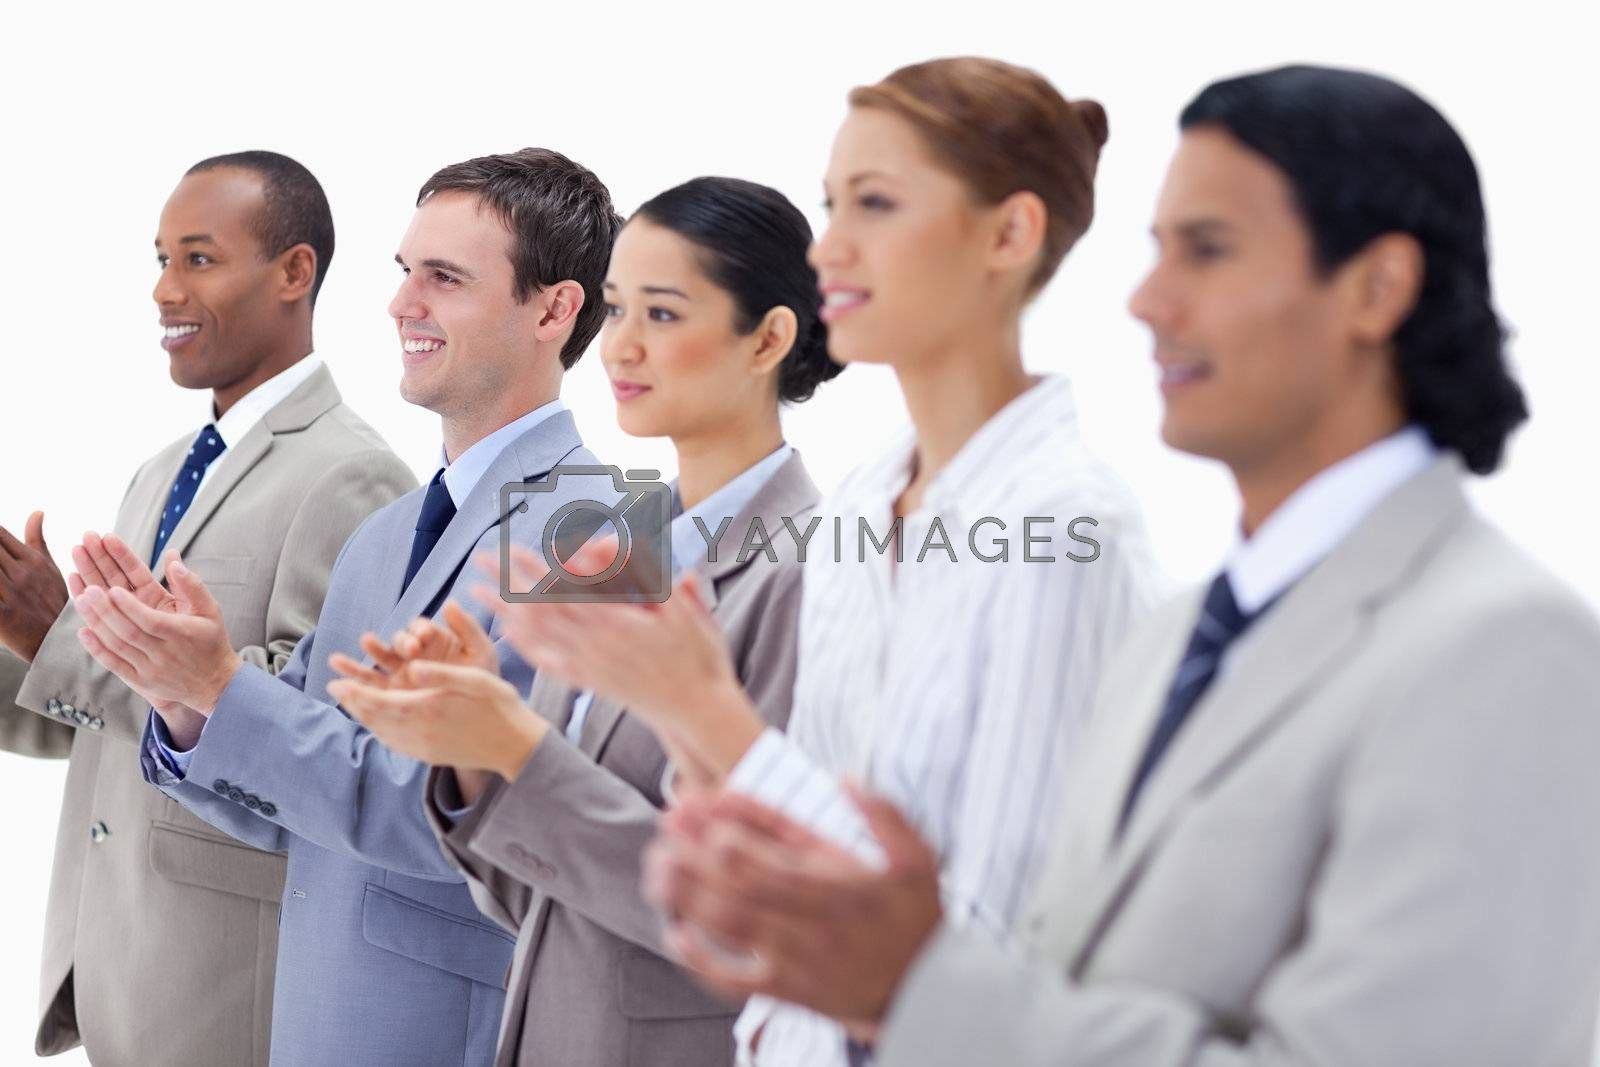 Close-up of people dressed in suits smiling and applauding with focus on the first three people against white background